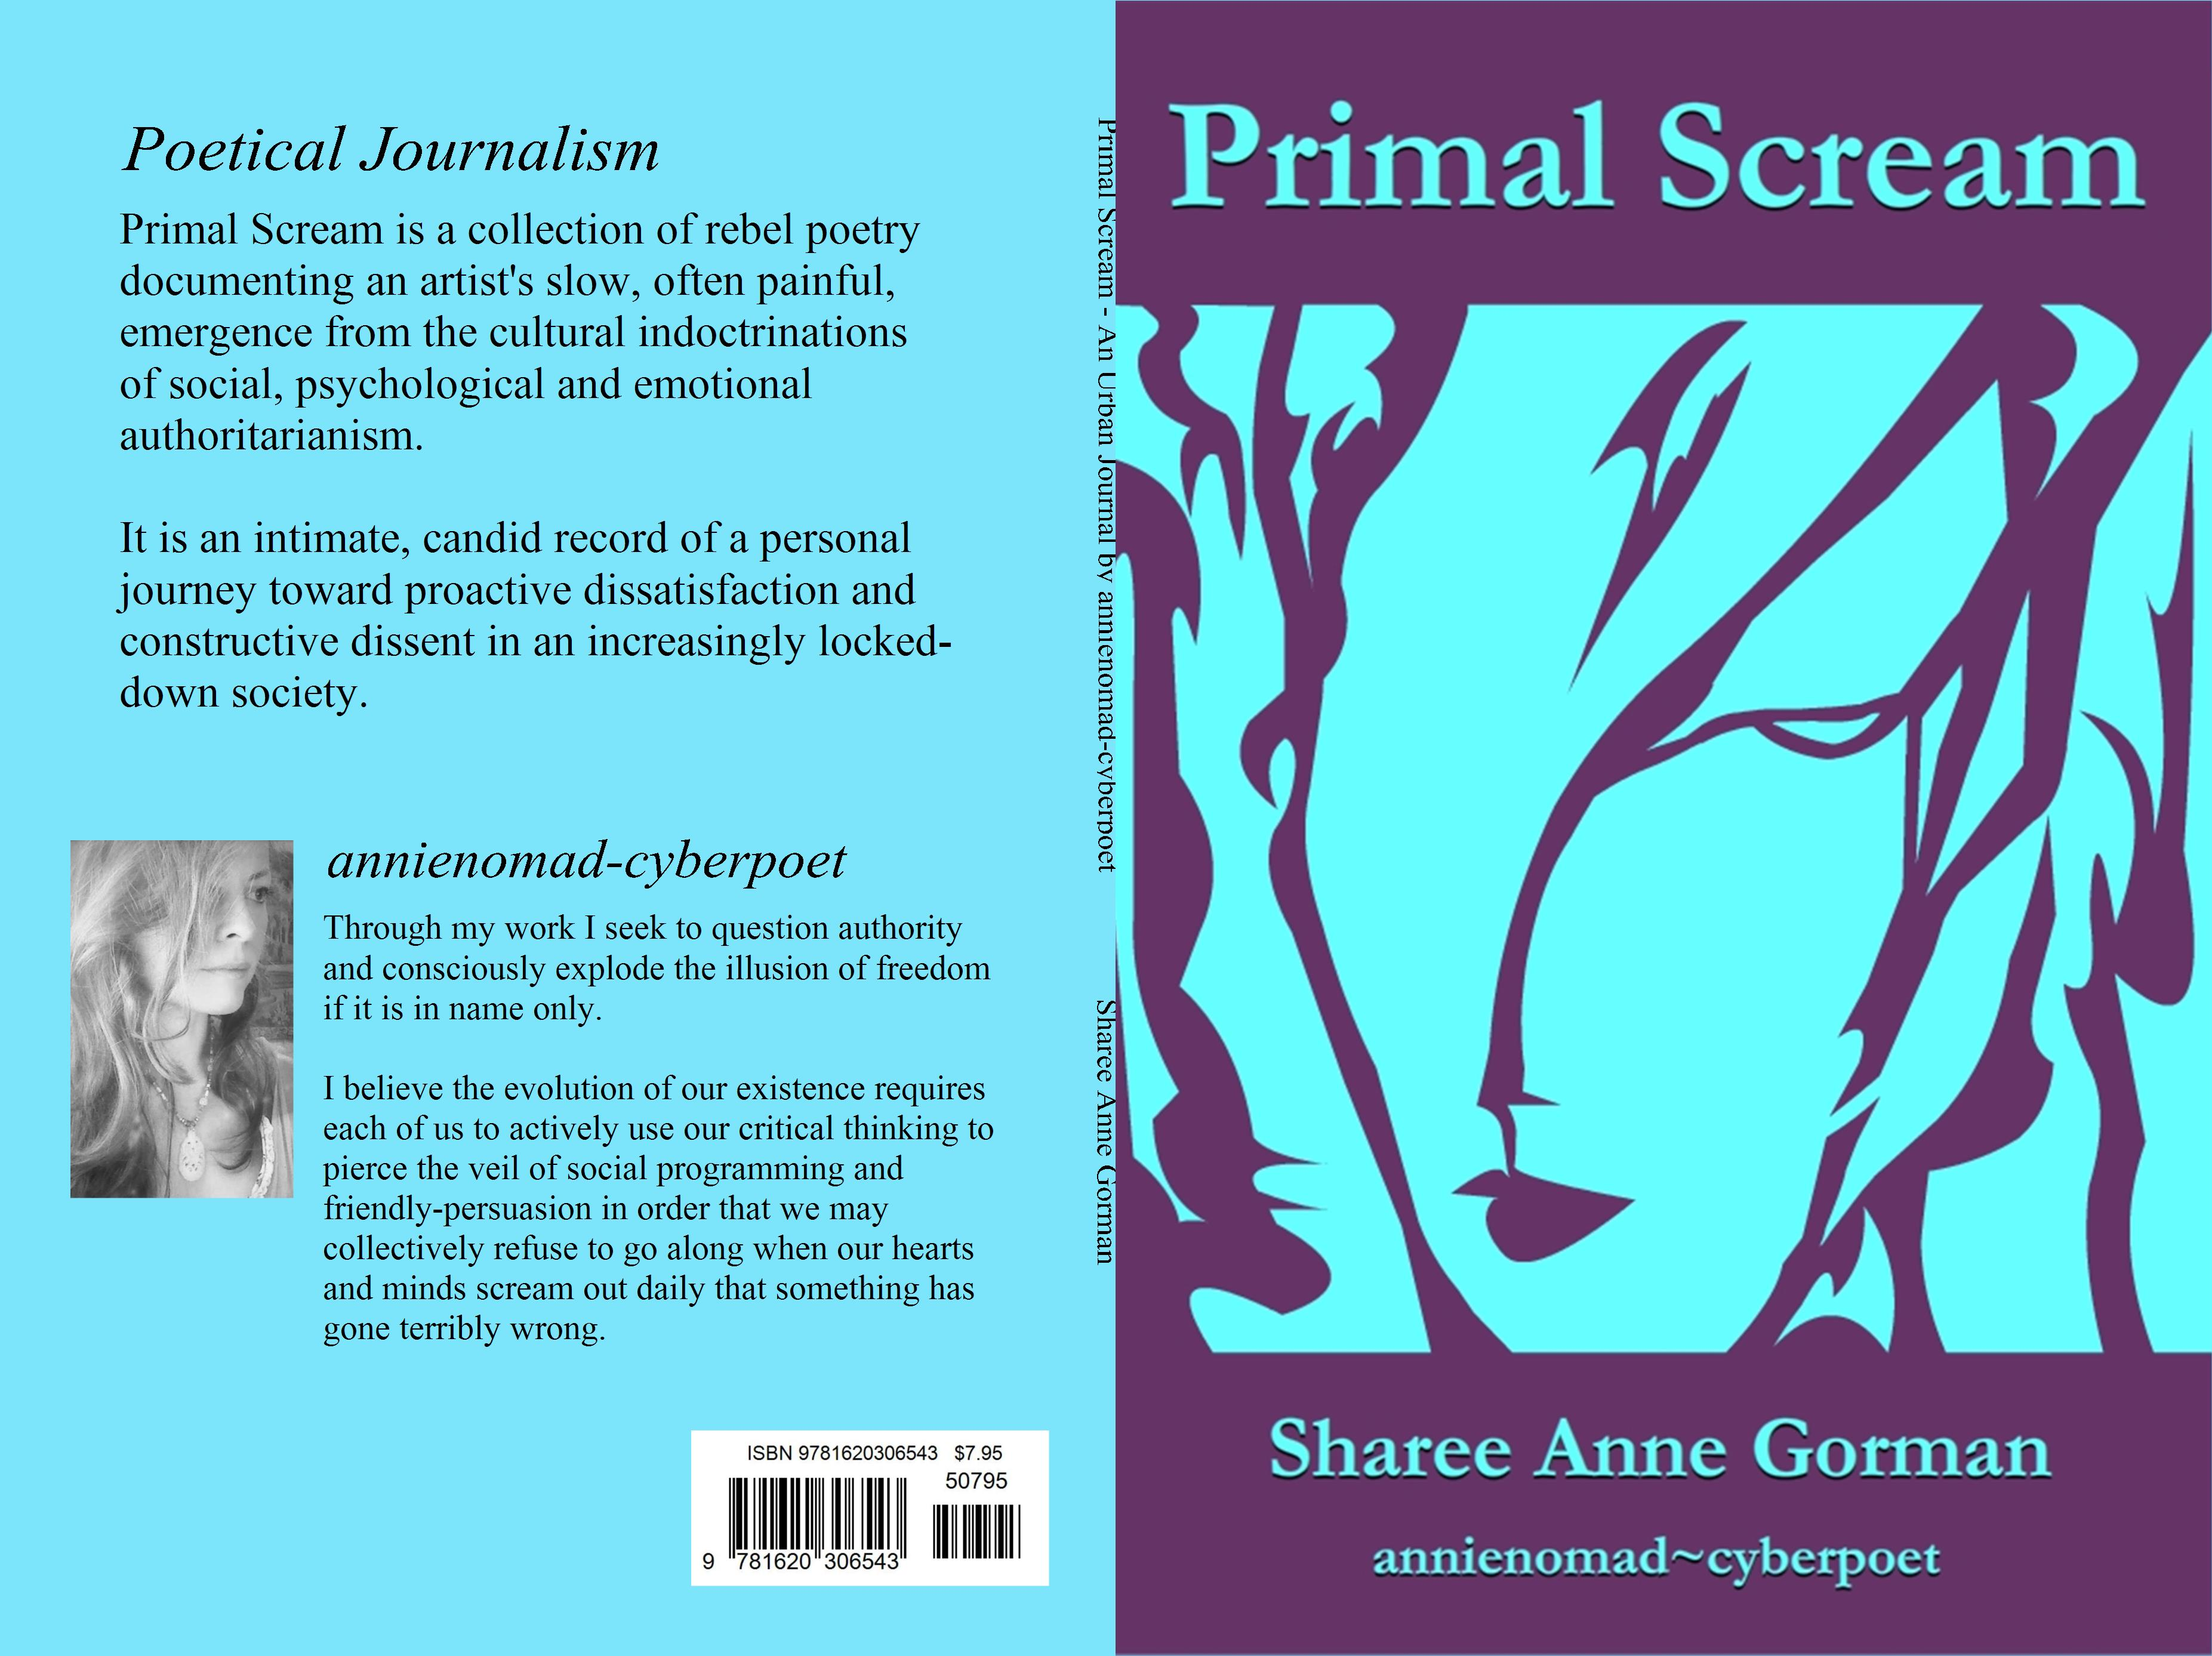 Primal Scream - An Urban Journal by Sharee Anne Gorman (annienomad-cyberpoet) cover image